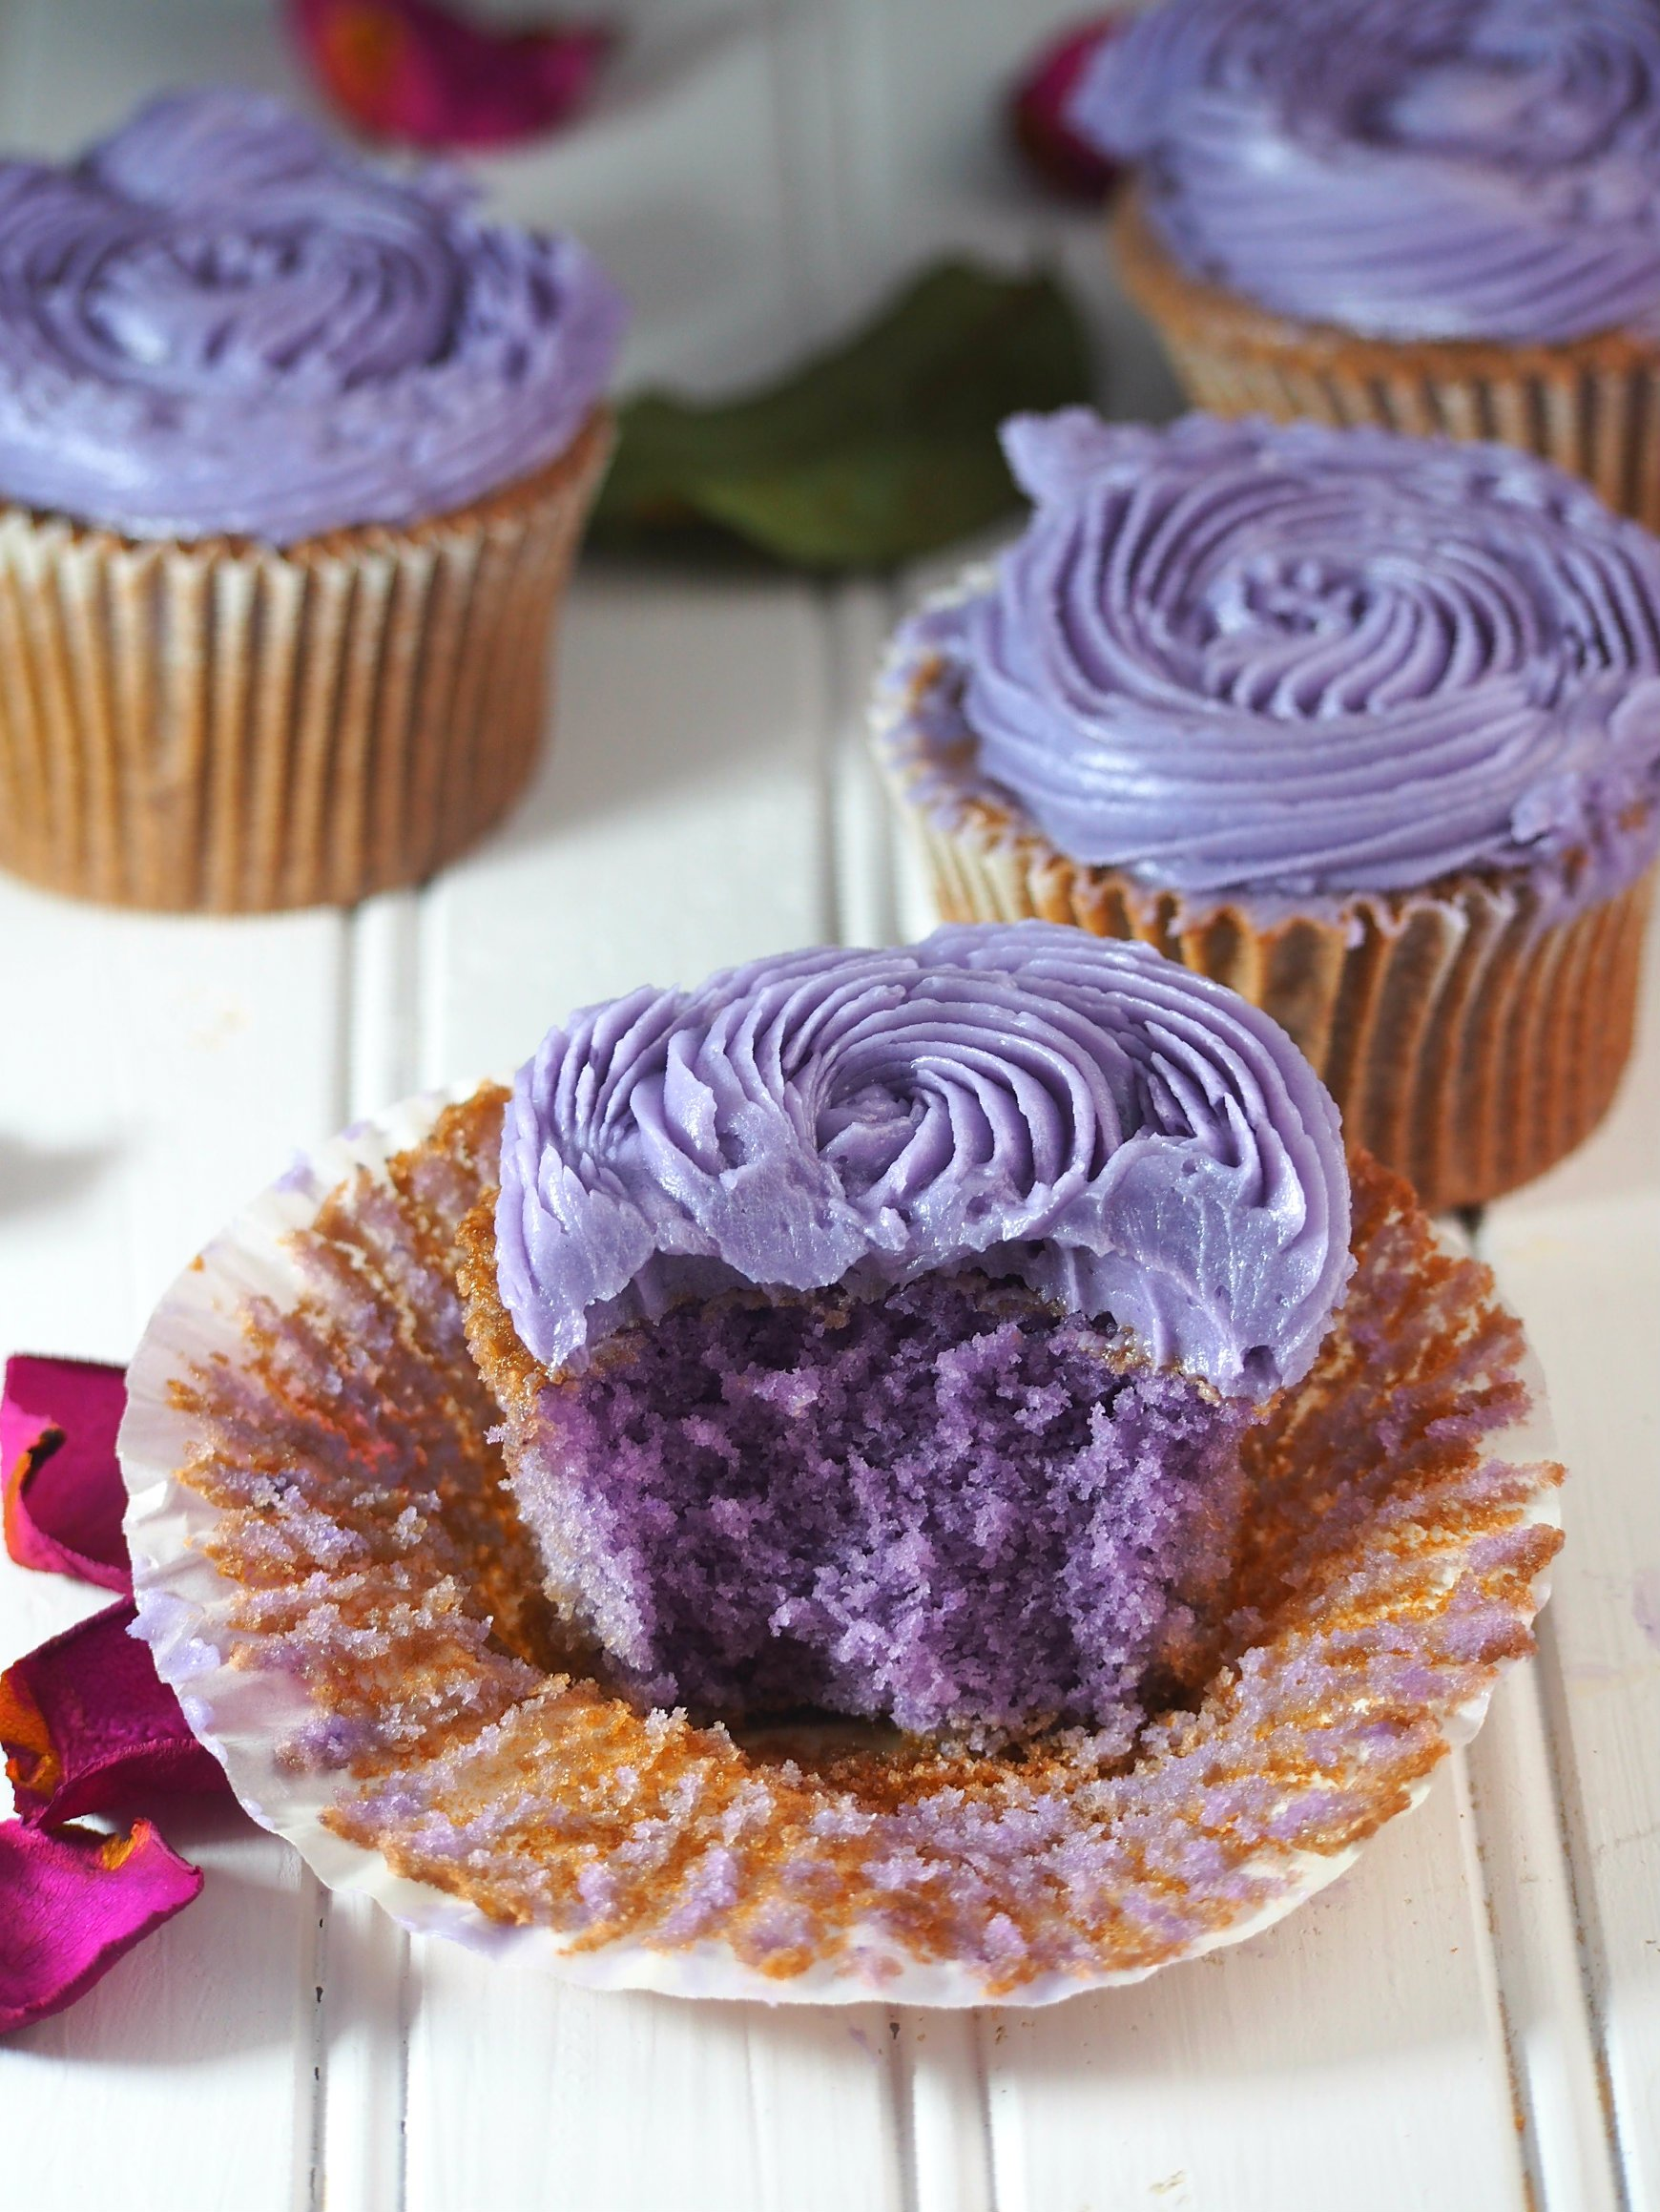 This recipe yields moist and flavorful ube cupcakes that are perfect with the creamy swiss meringue buttercream icing.